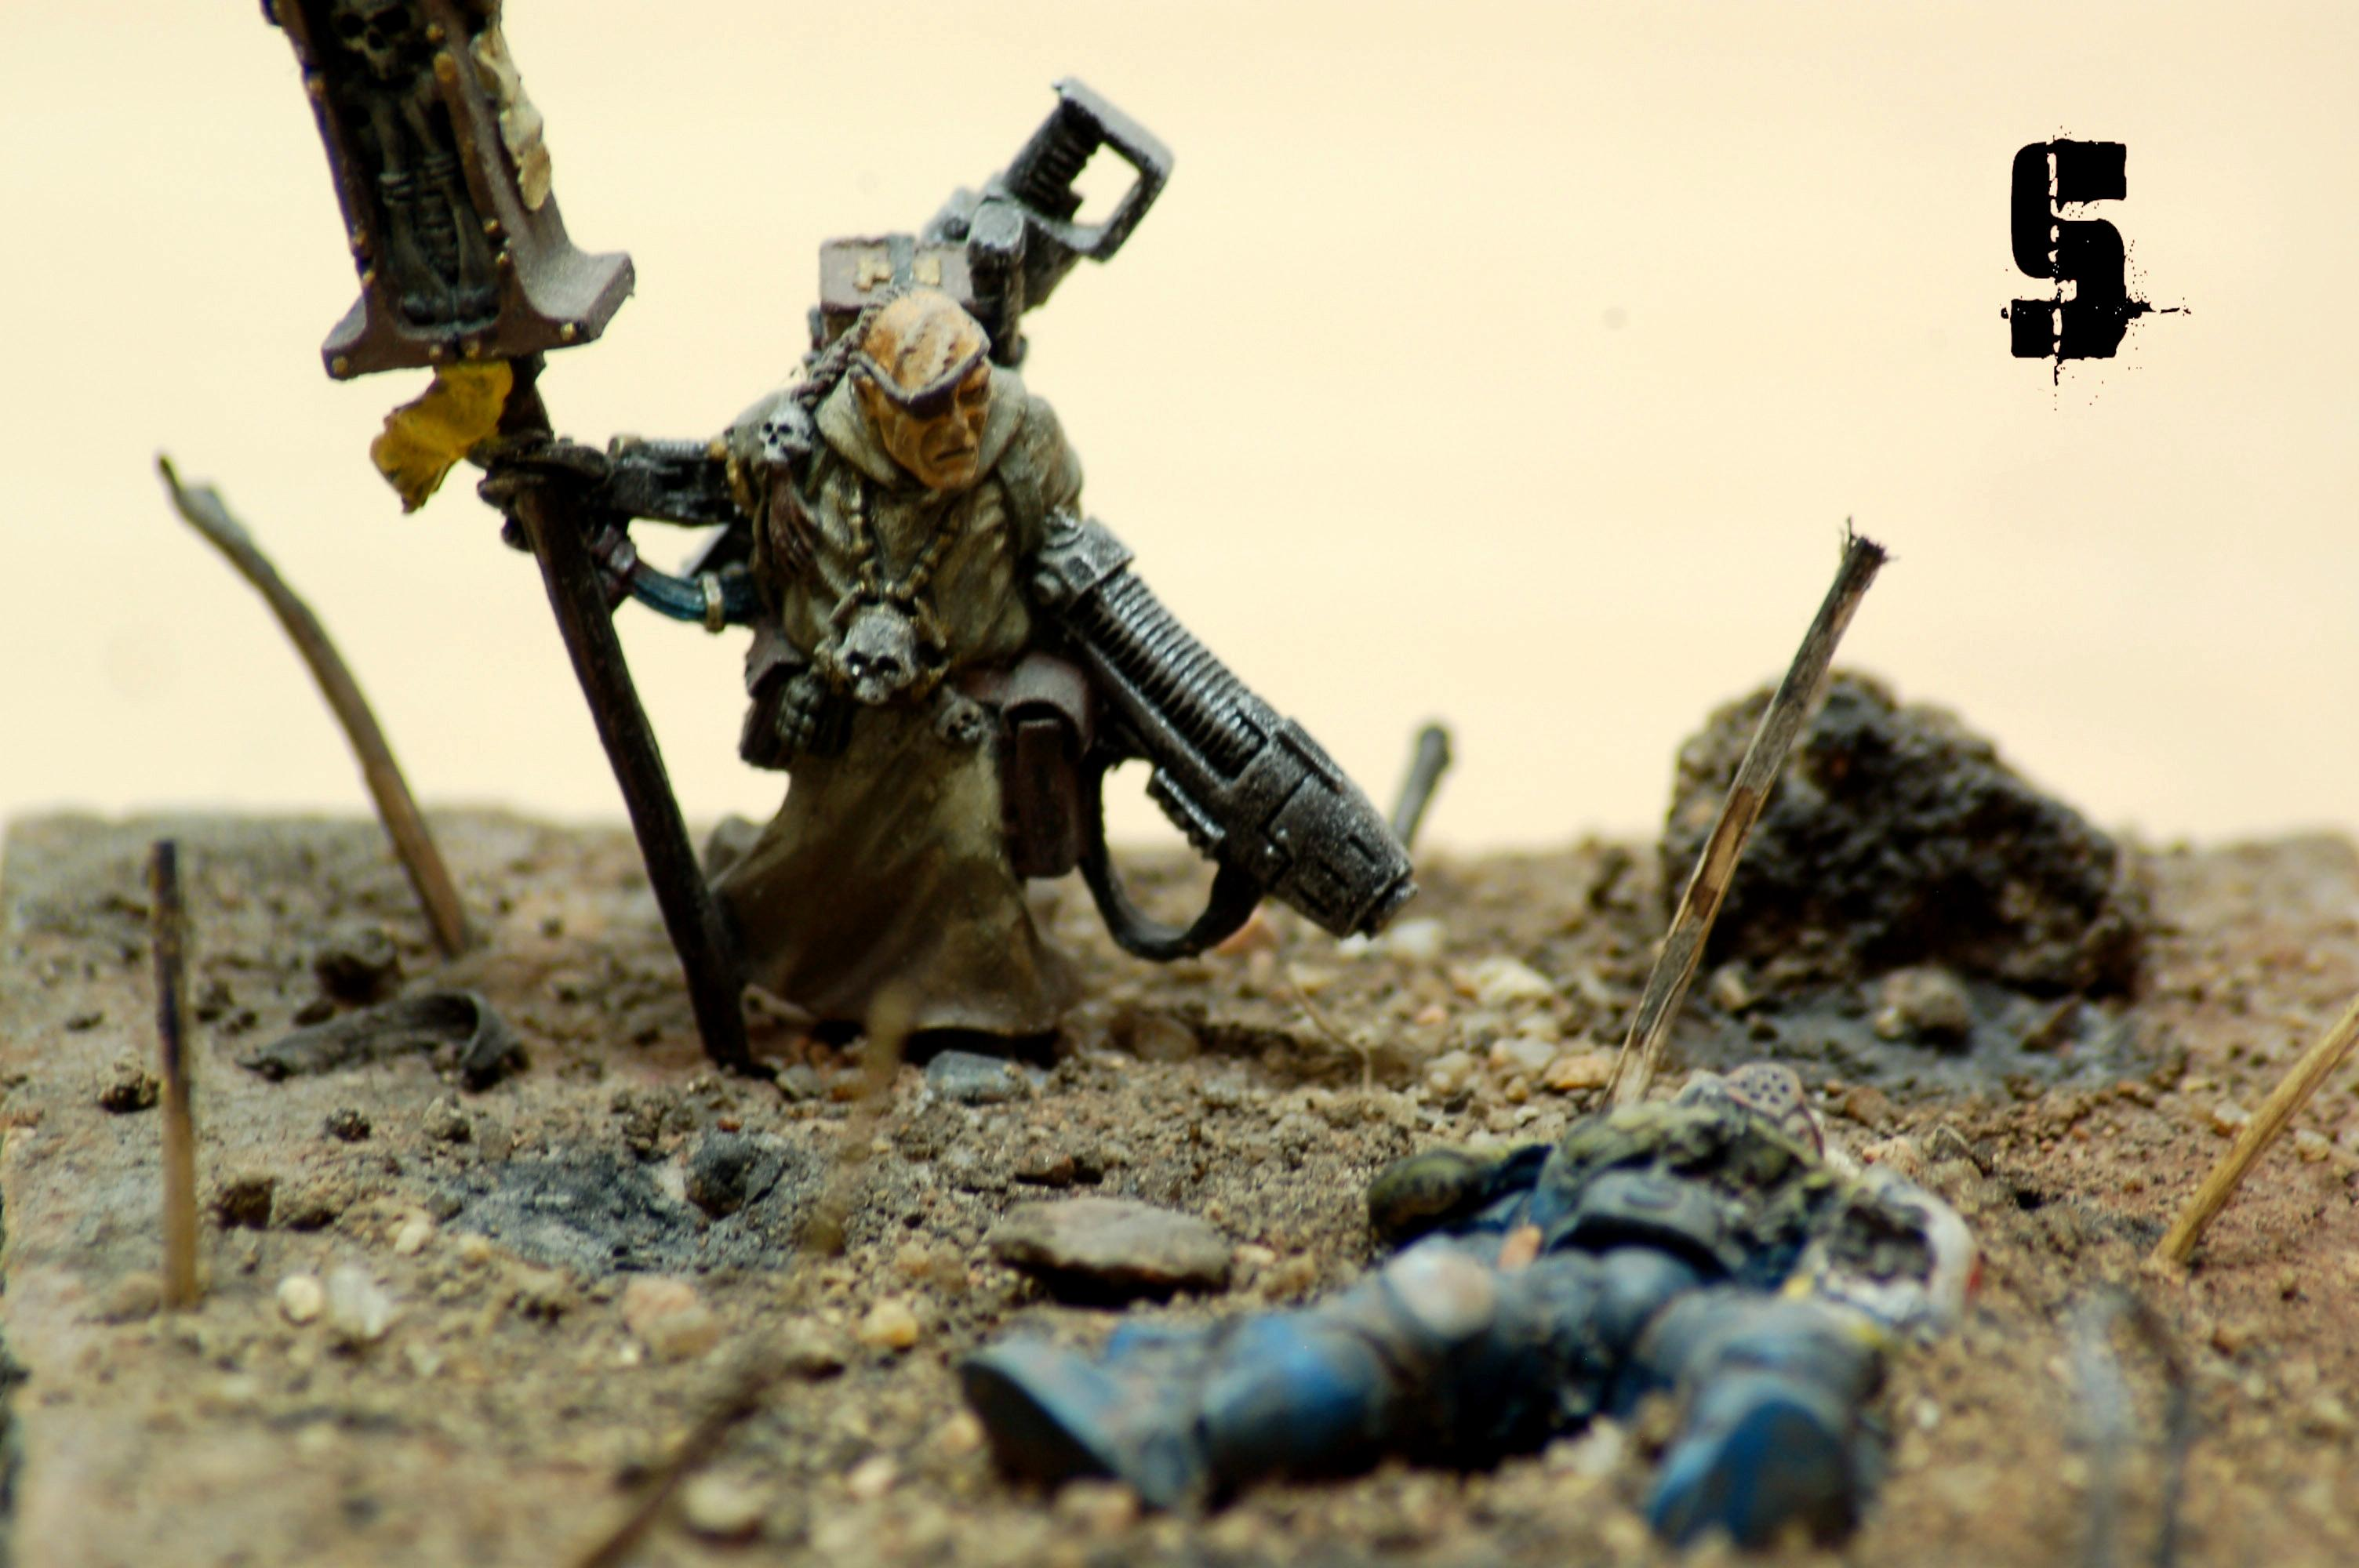 Diorama, Missionary, Old Battle, Saw